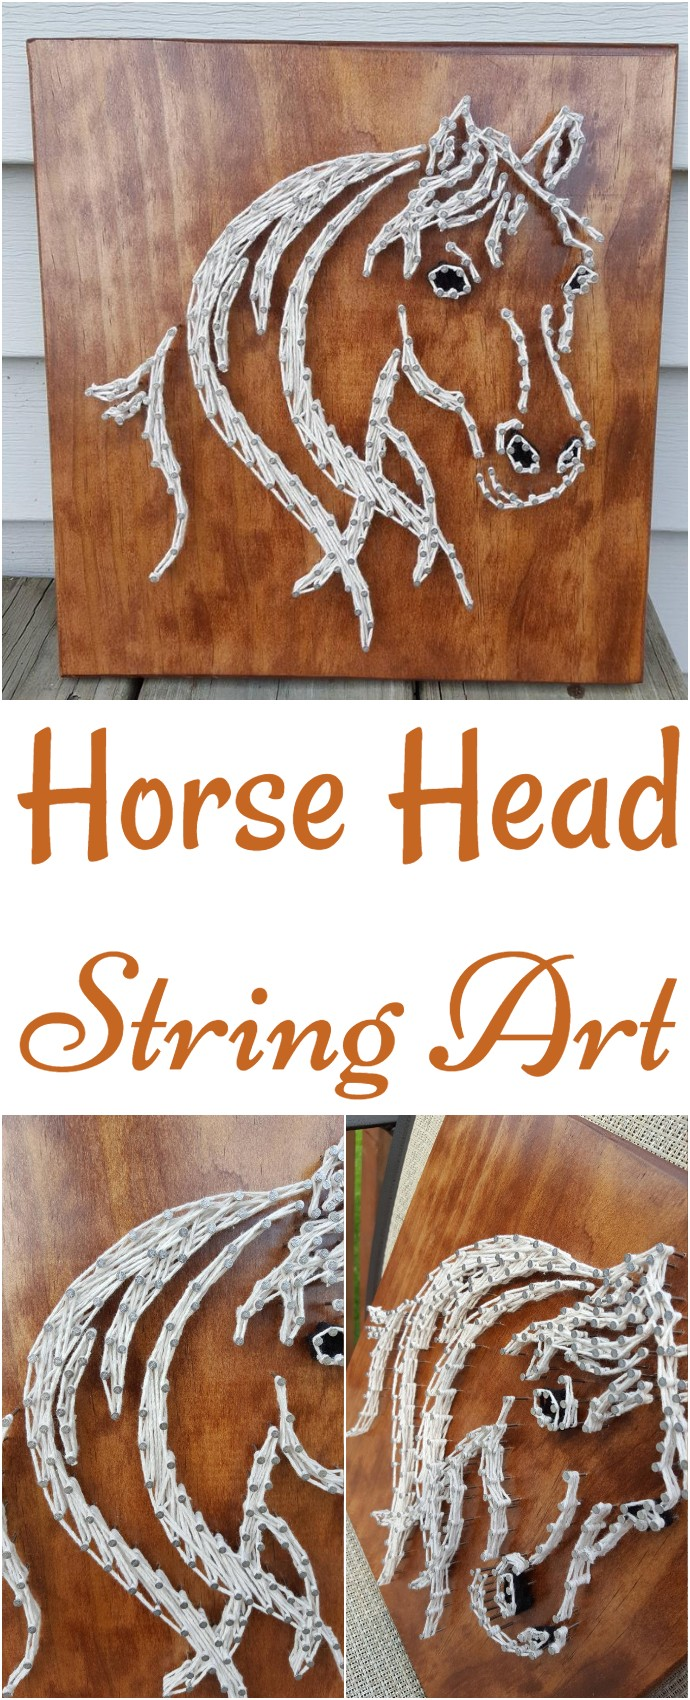 Horse Head String Art